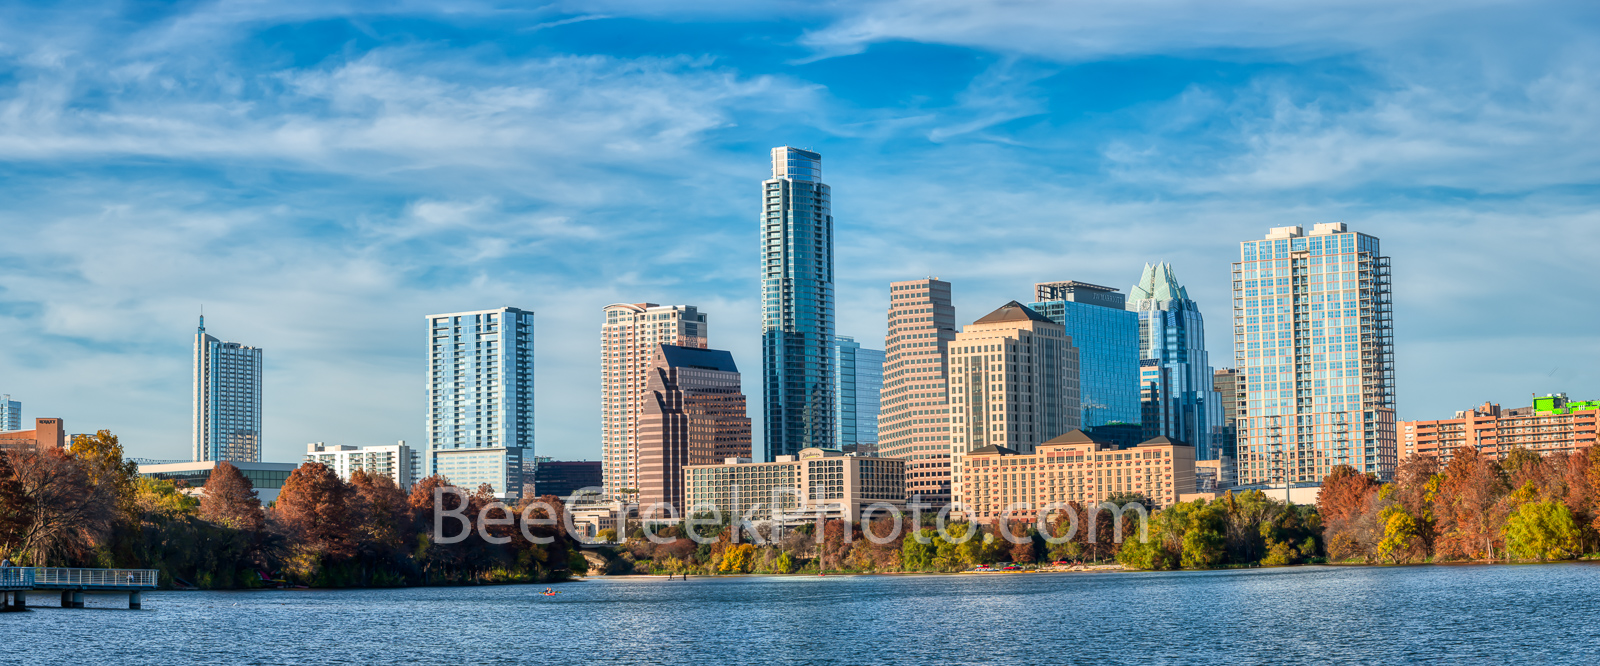 Austin skyline, city, cities,  cityscape, cityscapes, architecture, architectural, texas city, urban scene, downtown, city scene, panorama, pano, panoramic,  skyscraper, high rise, buildings, modern c, photo